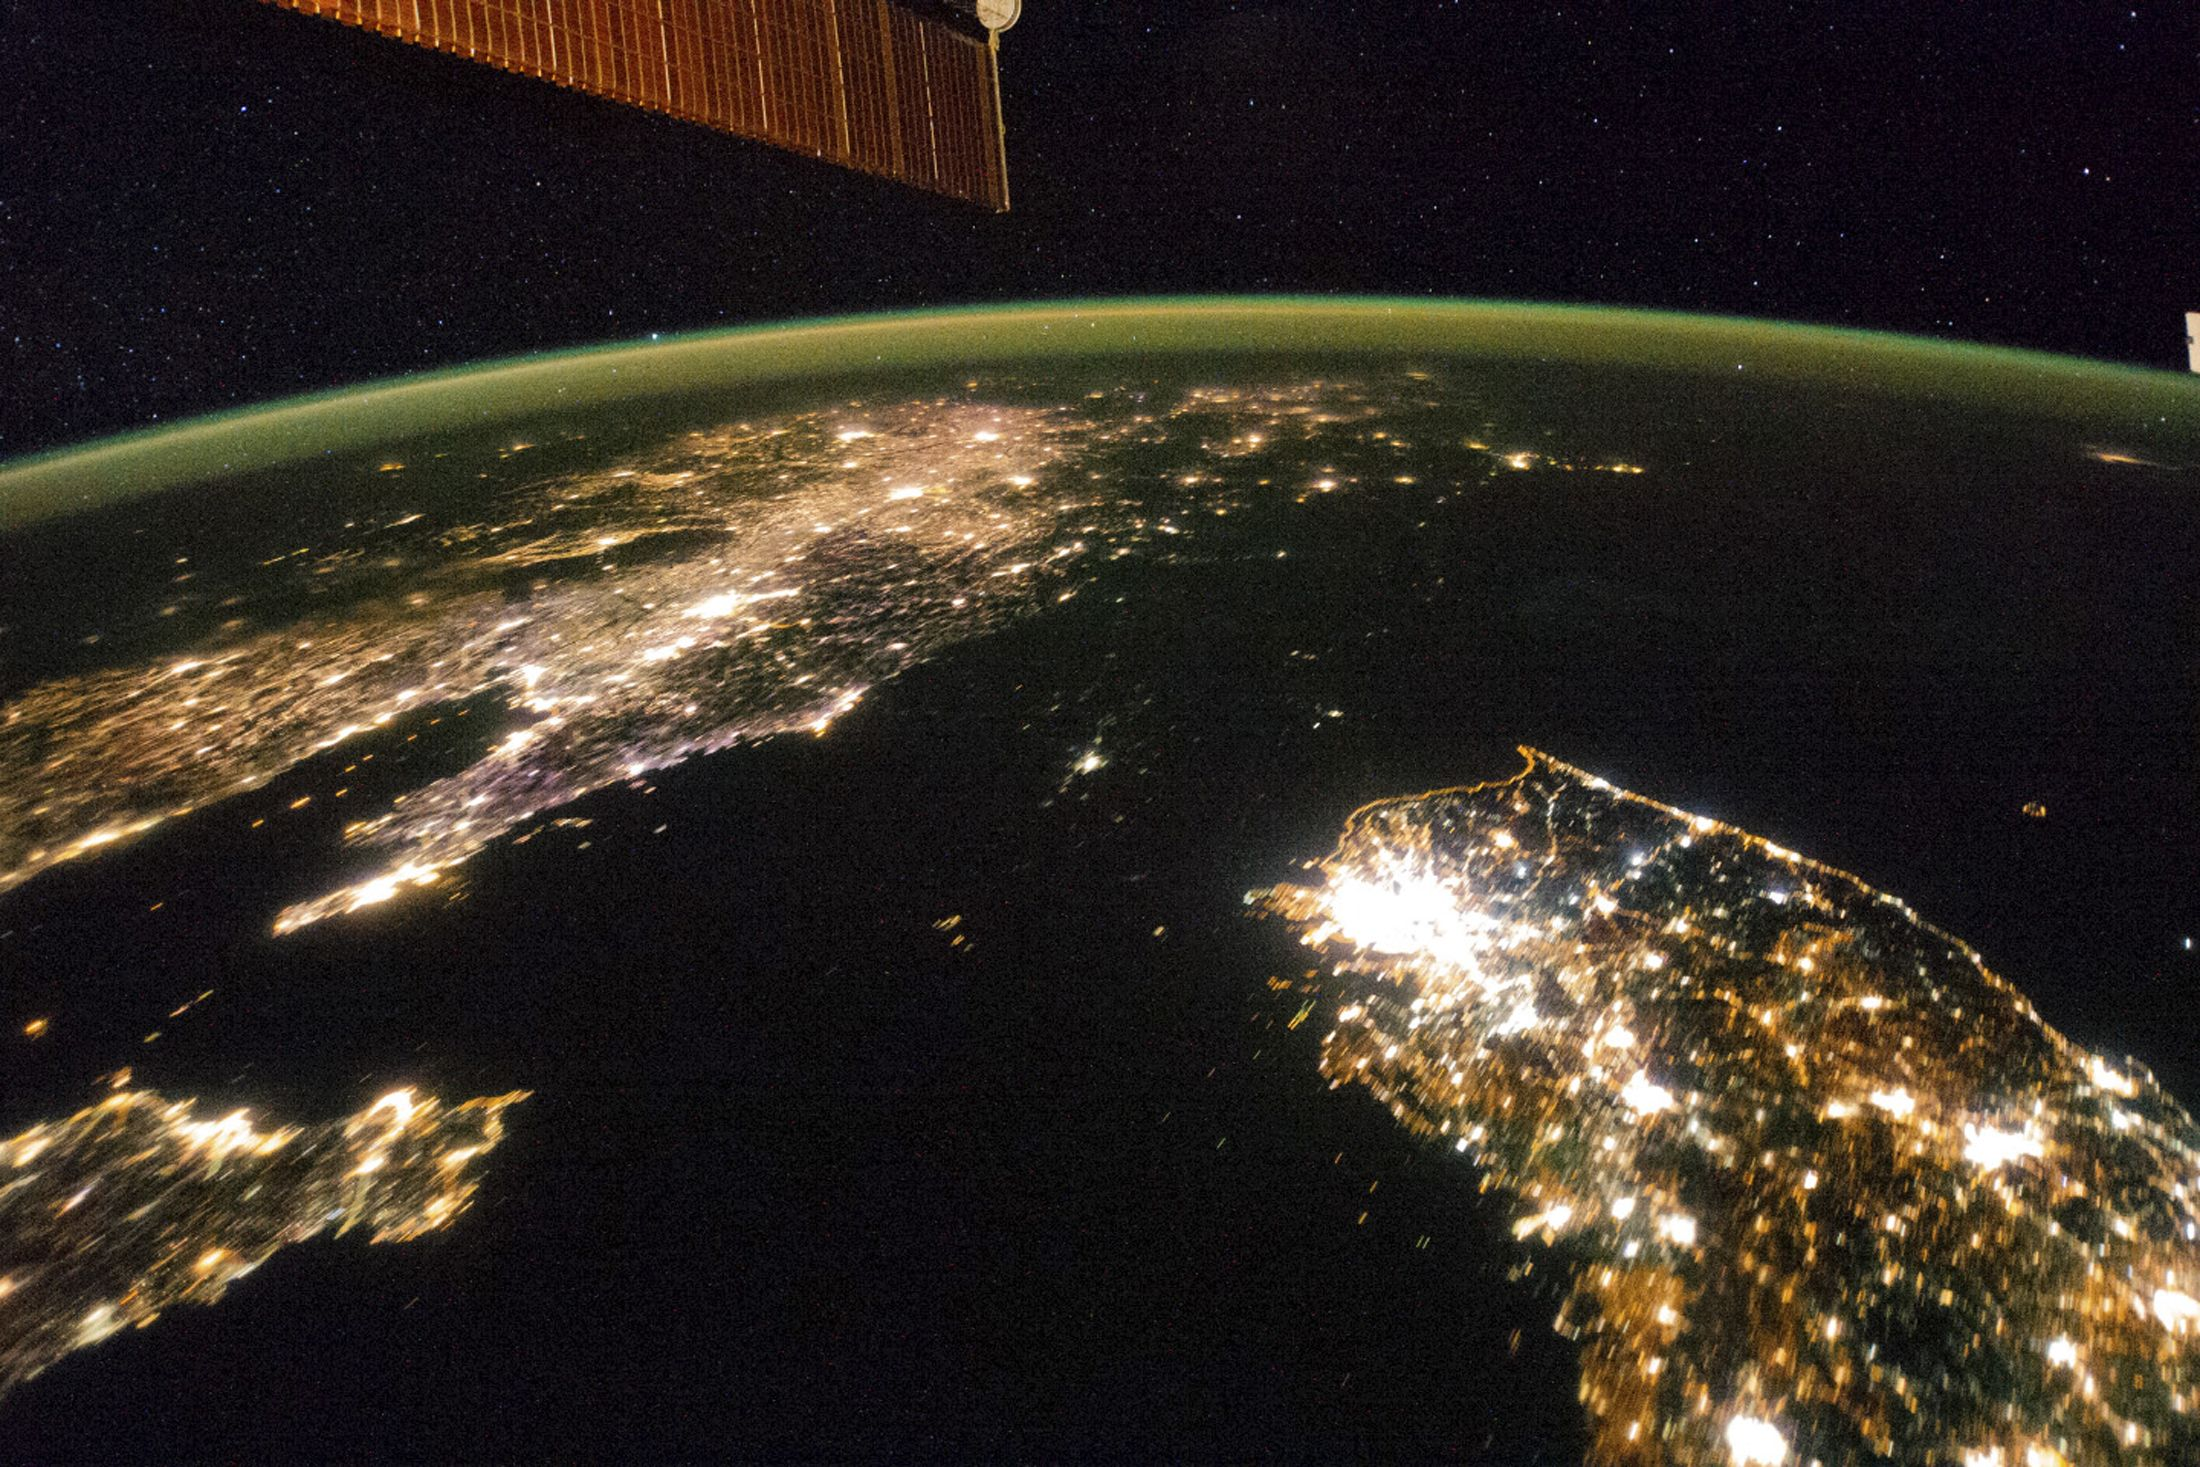 2-10-15 North Korea satellite